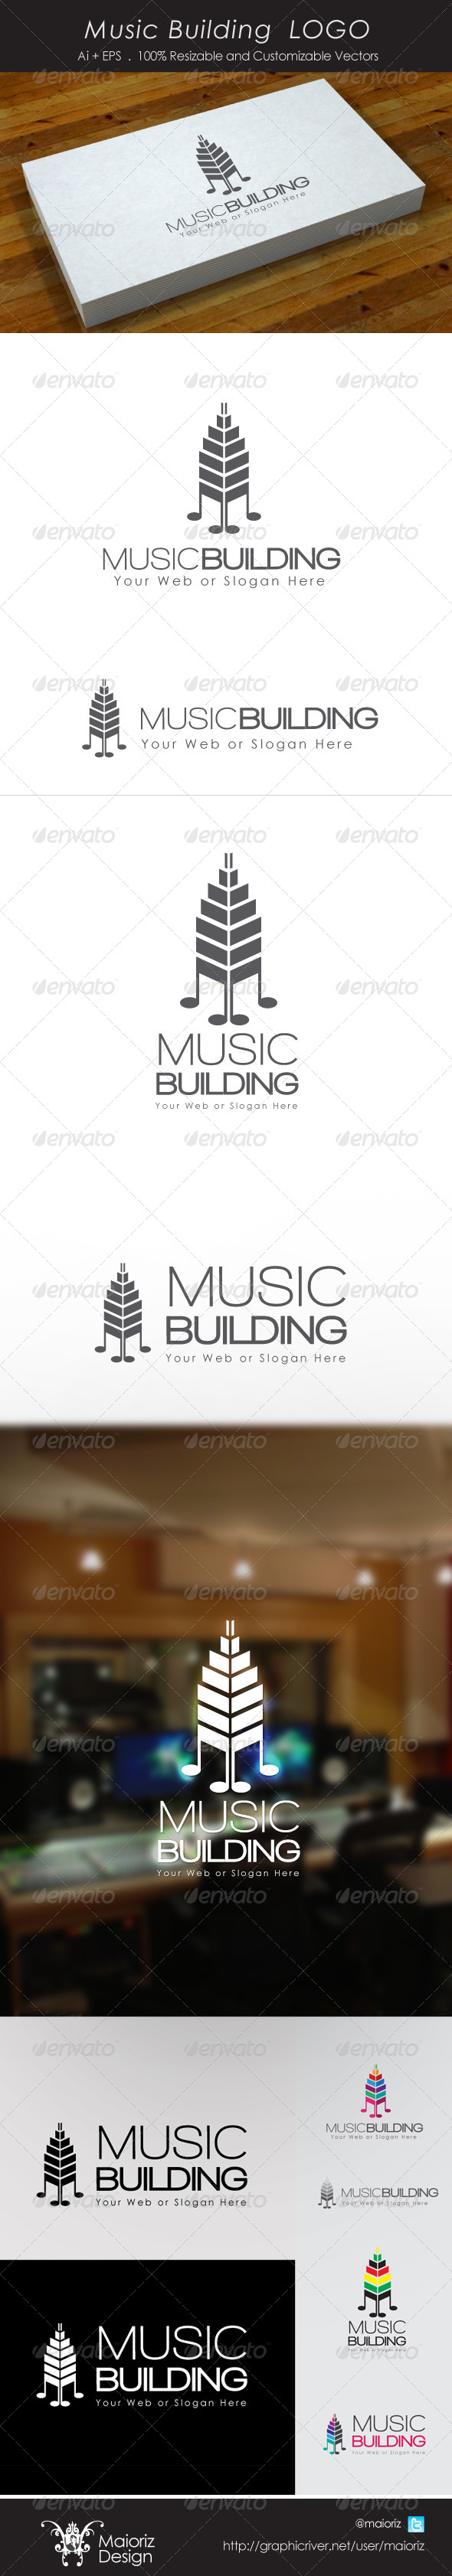 Music Building Logo